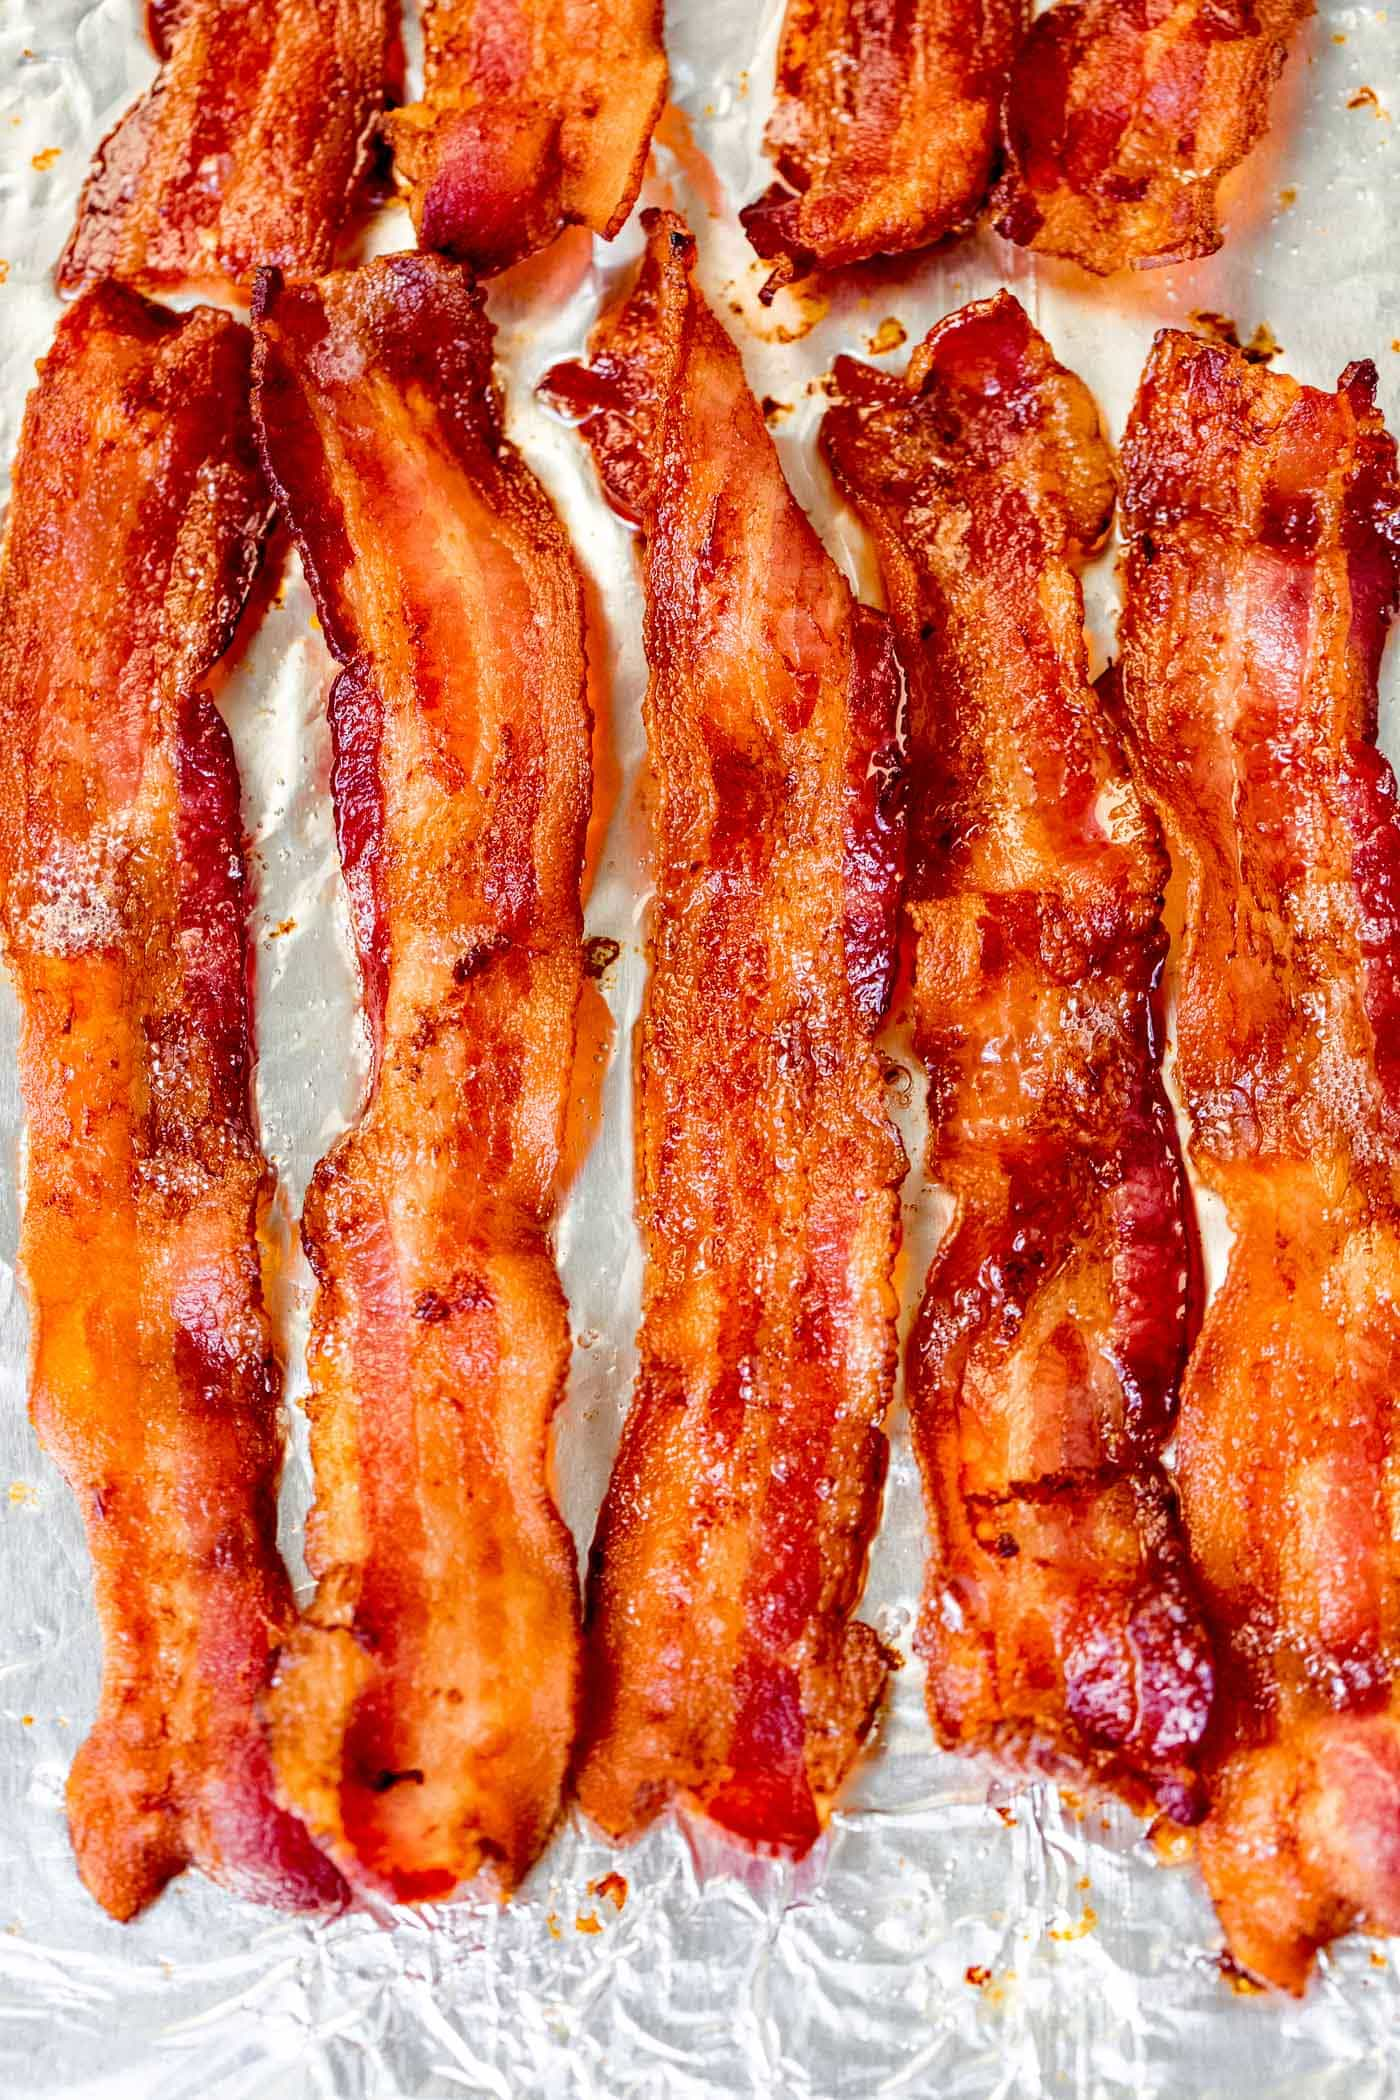 Five slices of perfectly crisp bacon.